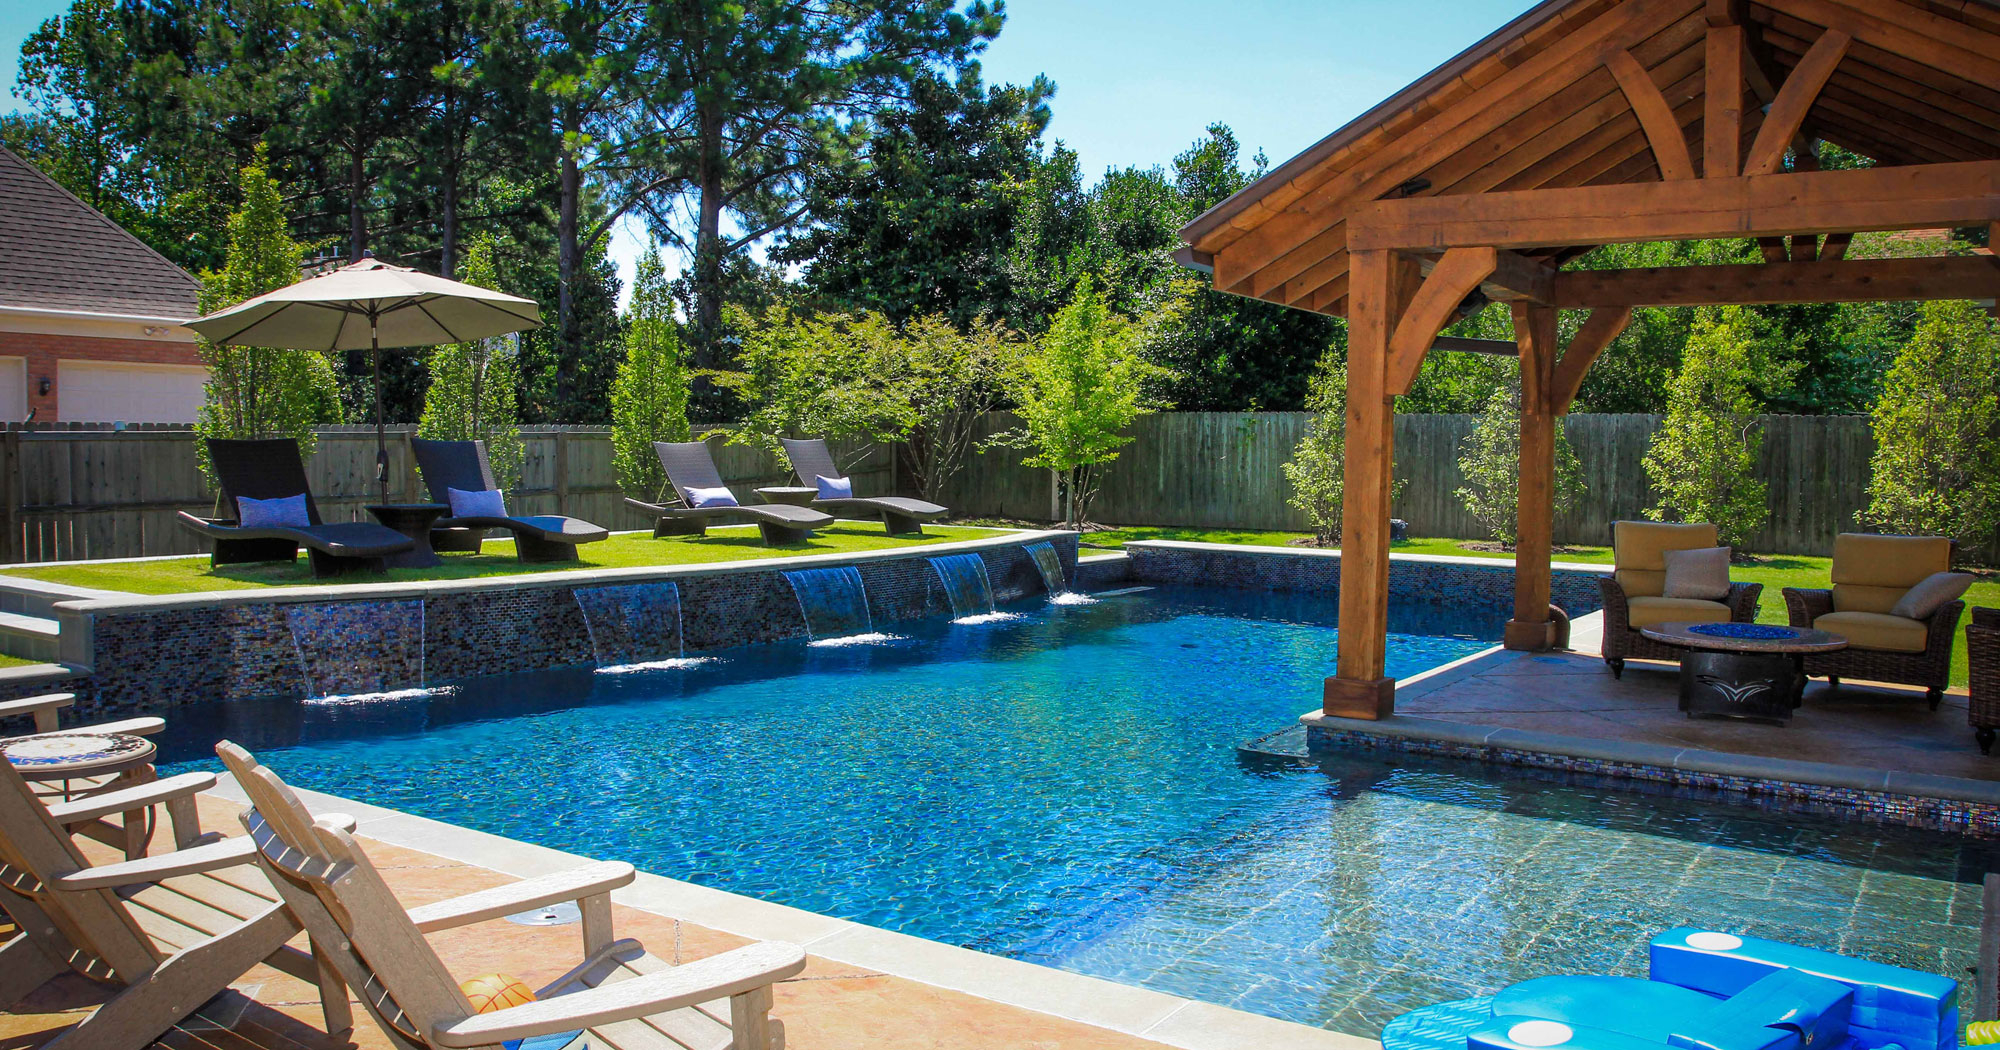 20 Backyard Pool Ideas For The Wealthy Homeowner regarding Backyard Pool Ideas Pictures